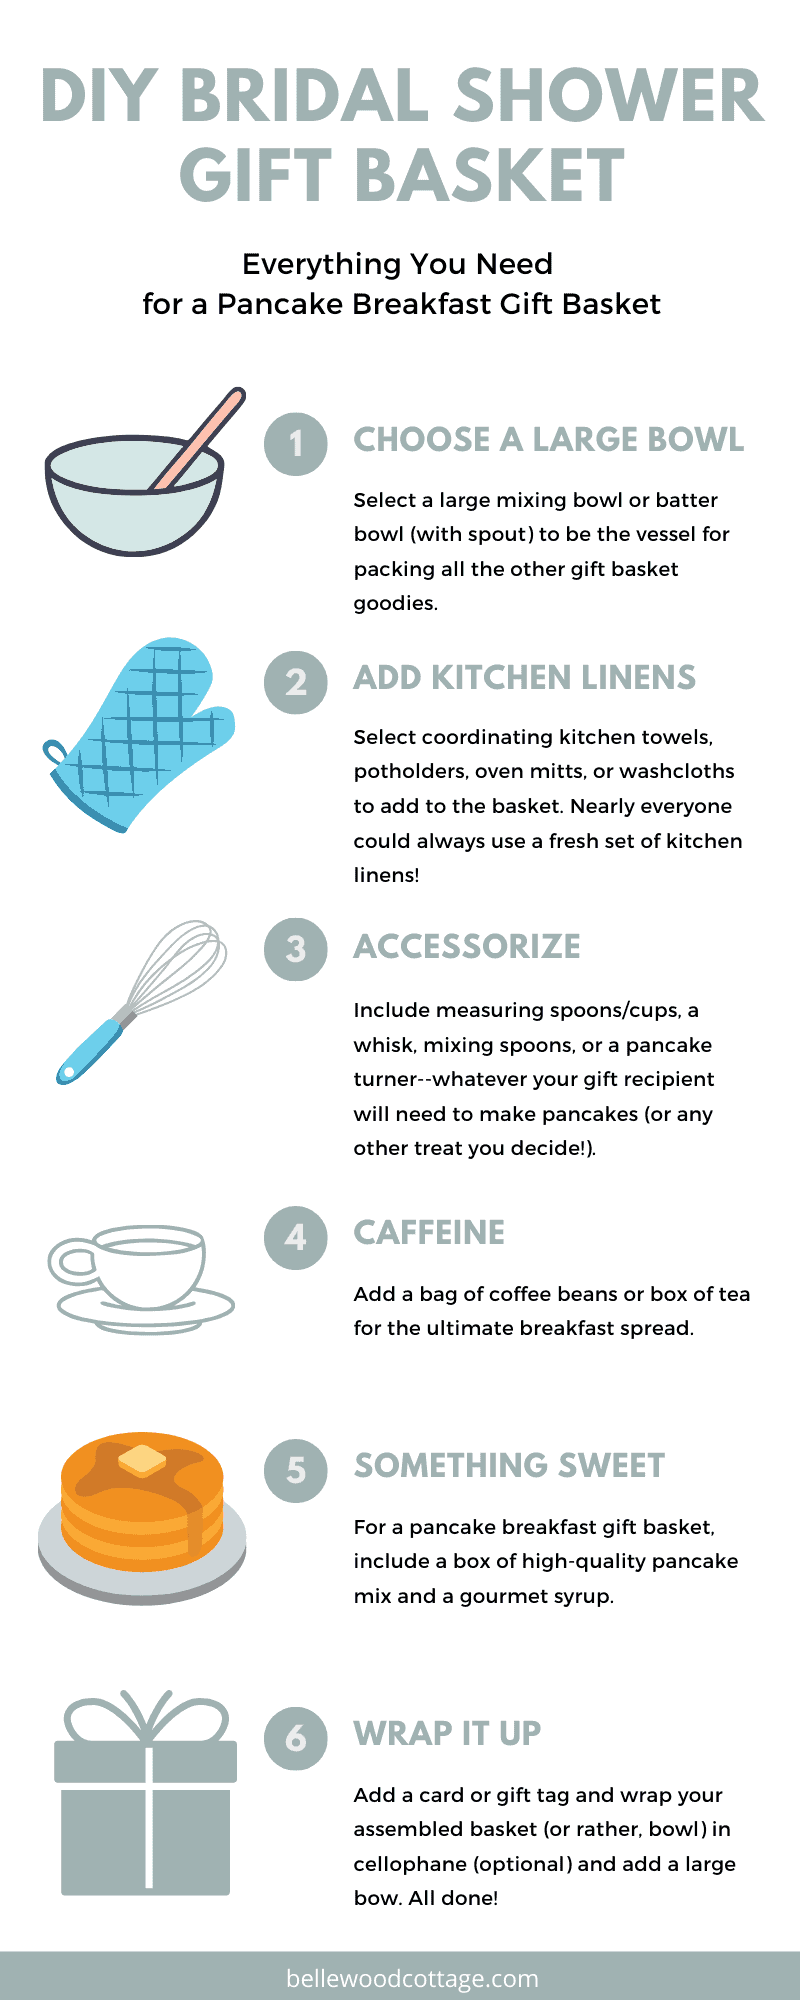 An infographic of the step-by-step items you will need to create a bridal shower gift basket.